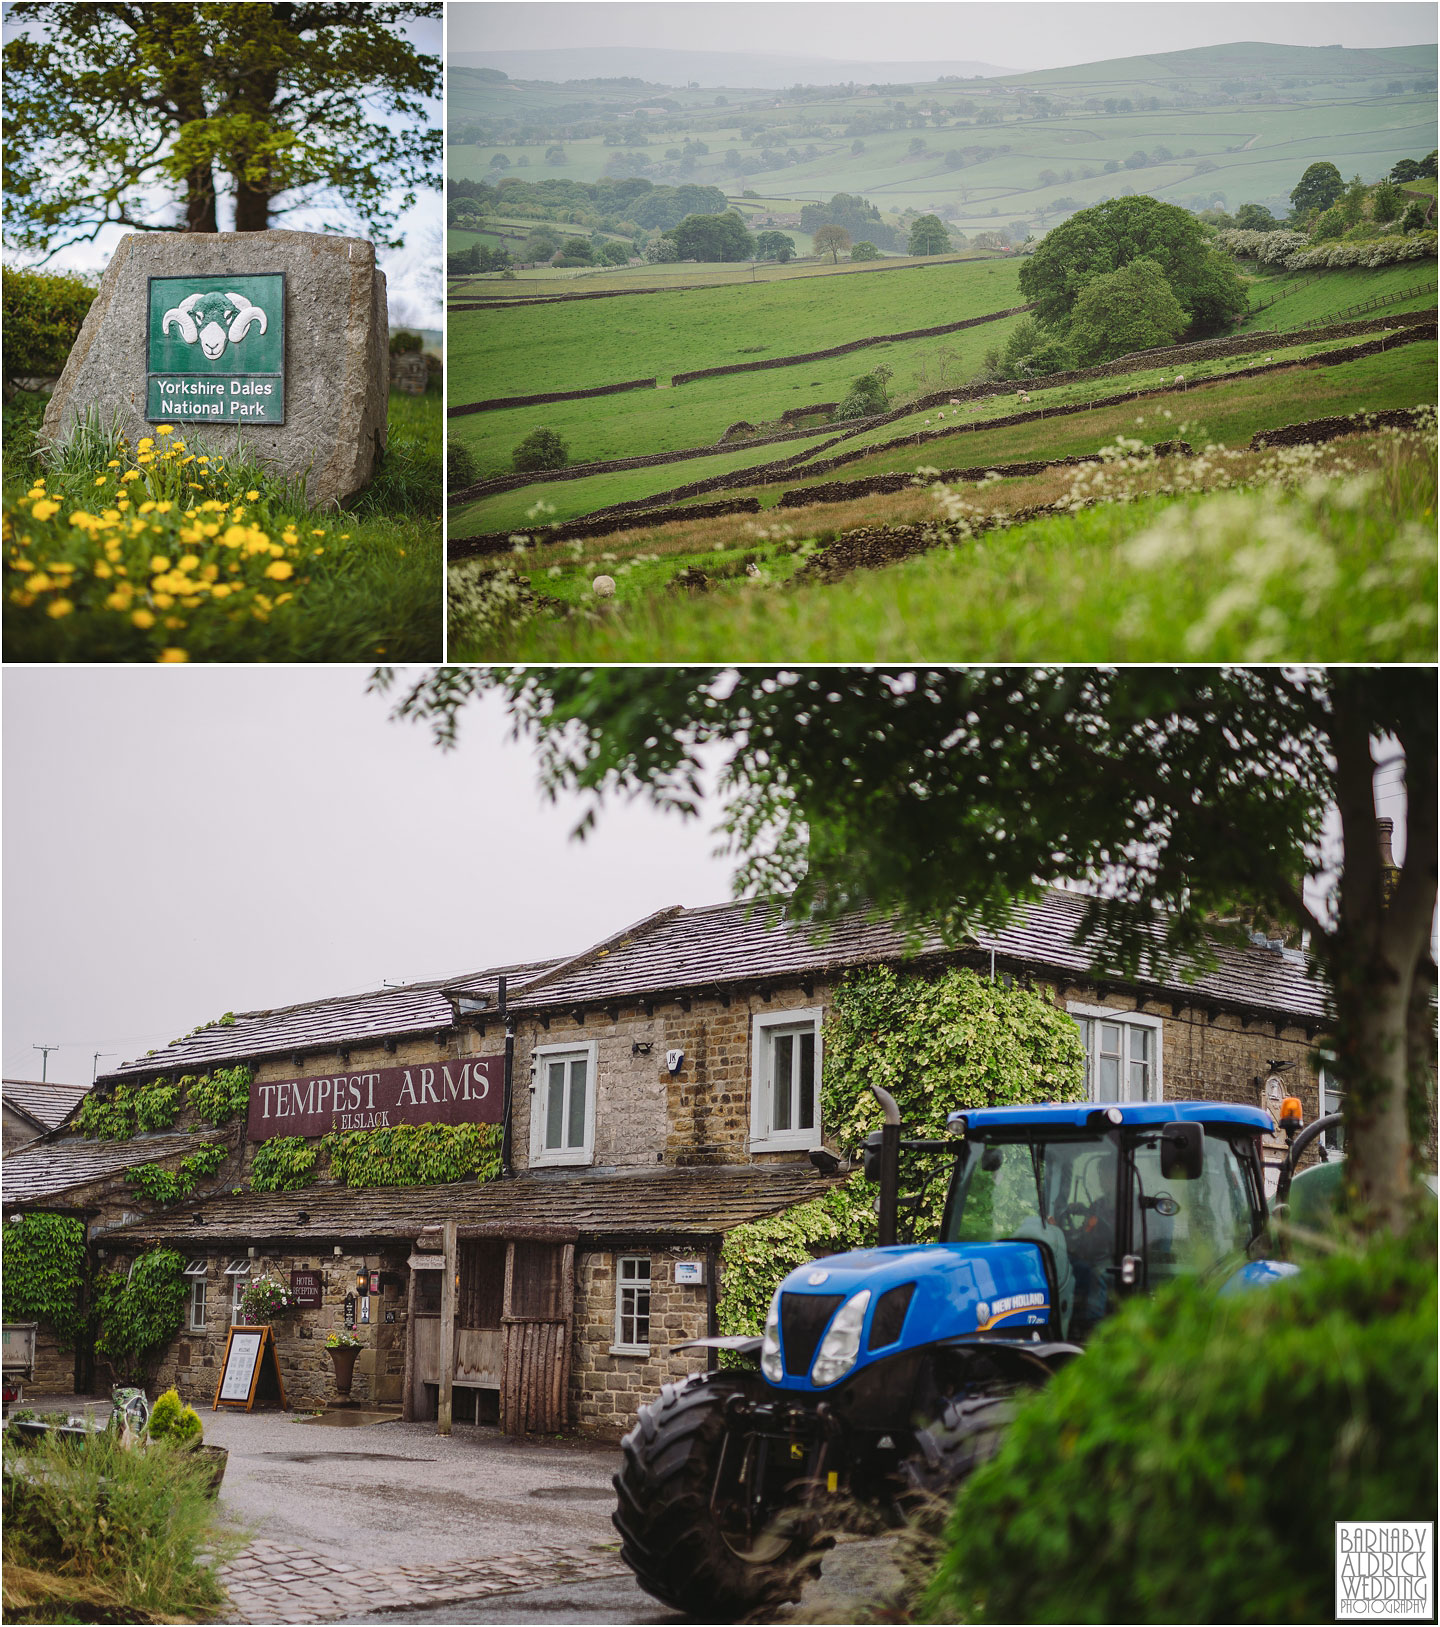 Wedding at The Tempest Arms Elslack, The Tempest Arms Elslack Wedding, Yorkshire Dales Wedding Photographer, Yorkshire Dales Wedding, UK Castle wedding photography